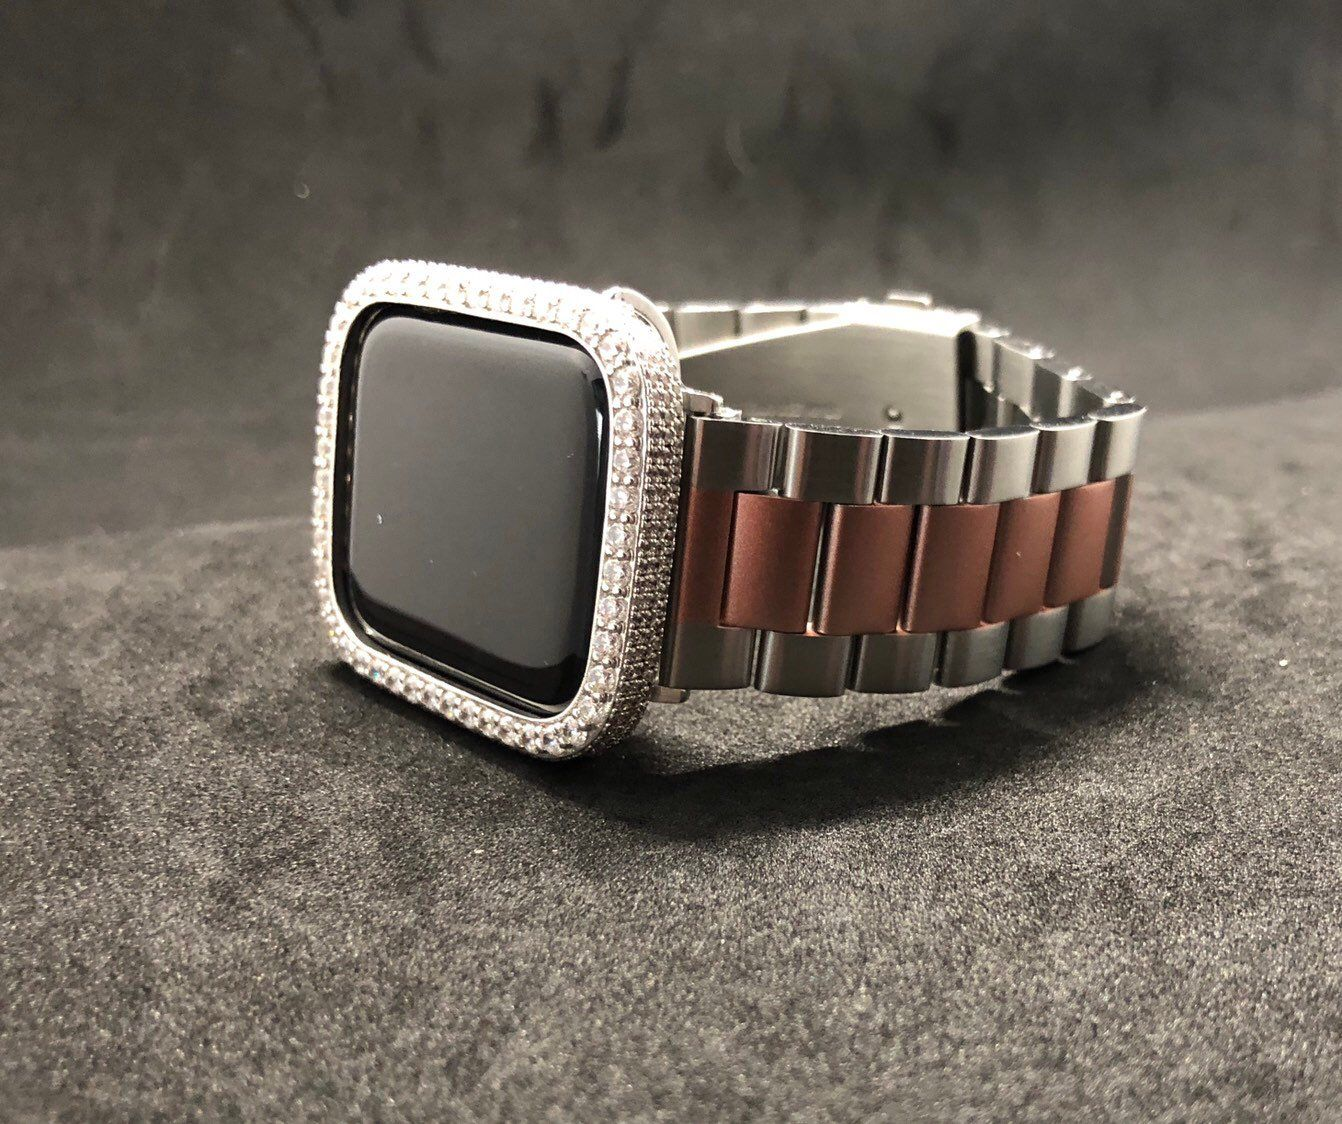 a138636255a826 Excited to share this item from my  etsy shop  Apple Watch Band Men s  Womens Two Tone Stainless Steel 38mm 40mm 42mm 44mm Series 1 2 3 4  Iced  Out Bezel ...